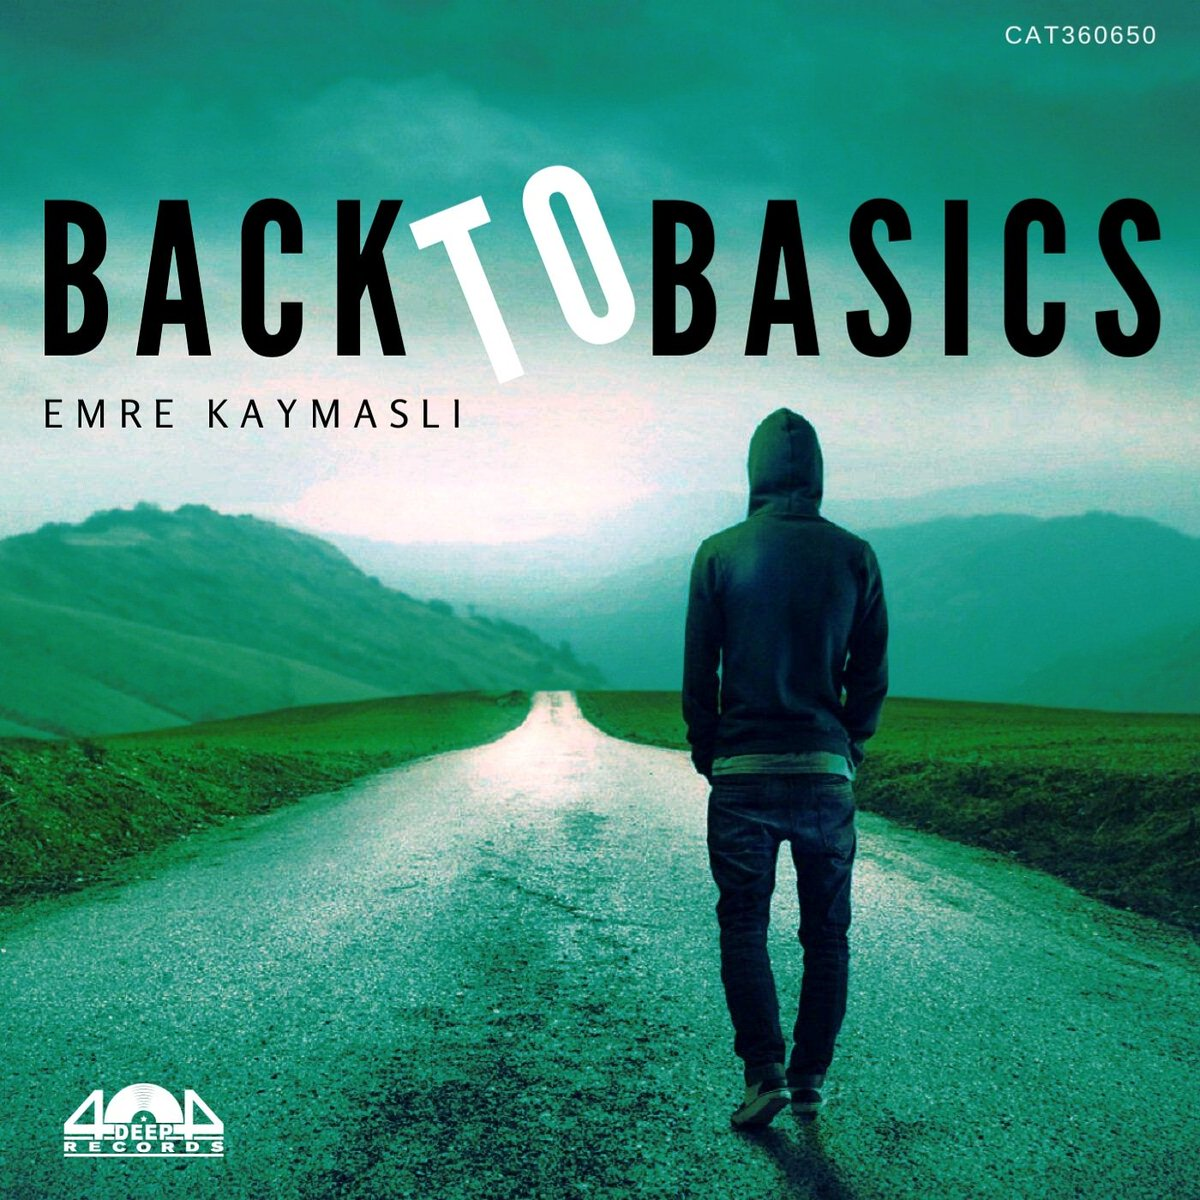 "Dört track ten oluşan ""Back To Basics"" Ep 404 Deep Records etiketiyle Spotify iTunes tidal deezer juno download traxsource Amazon music ve tüm dijital platformlarda yayında #Dance #deephouse #House #progressivehouse #techhouse https://open.spotify.com/album/72Wrjh4ONxjnKCvHYaxEqt?si=JZdewWsFRgmVRsH9dq00wA …  https://www.amazon.com/Back-Basics-Explicit-Emre-KAYMASLI/dp/B084C69KPH/ref=mp_s_a_1_12?keywords=Emre+KAYMASLI&qid=1582742794&s=dmusic&sr=1-12 …pic.twitter.com/3jpjg3DHIs"